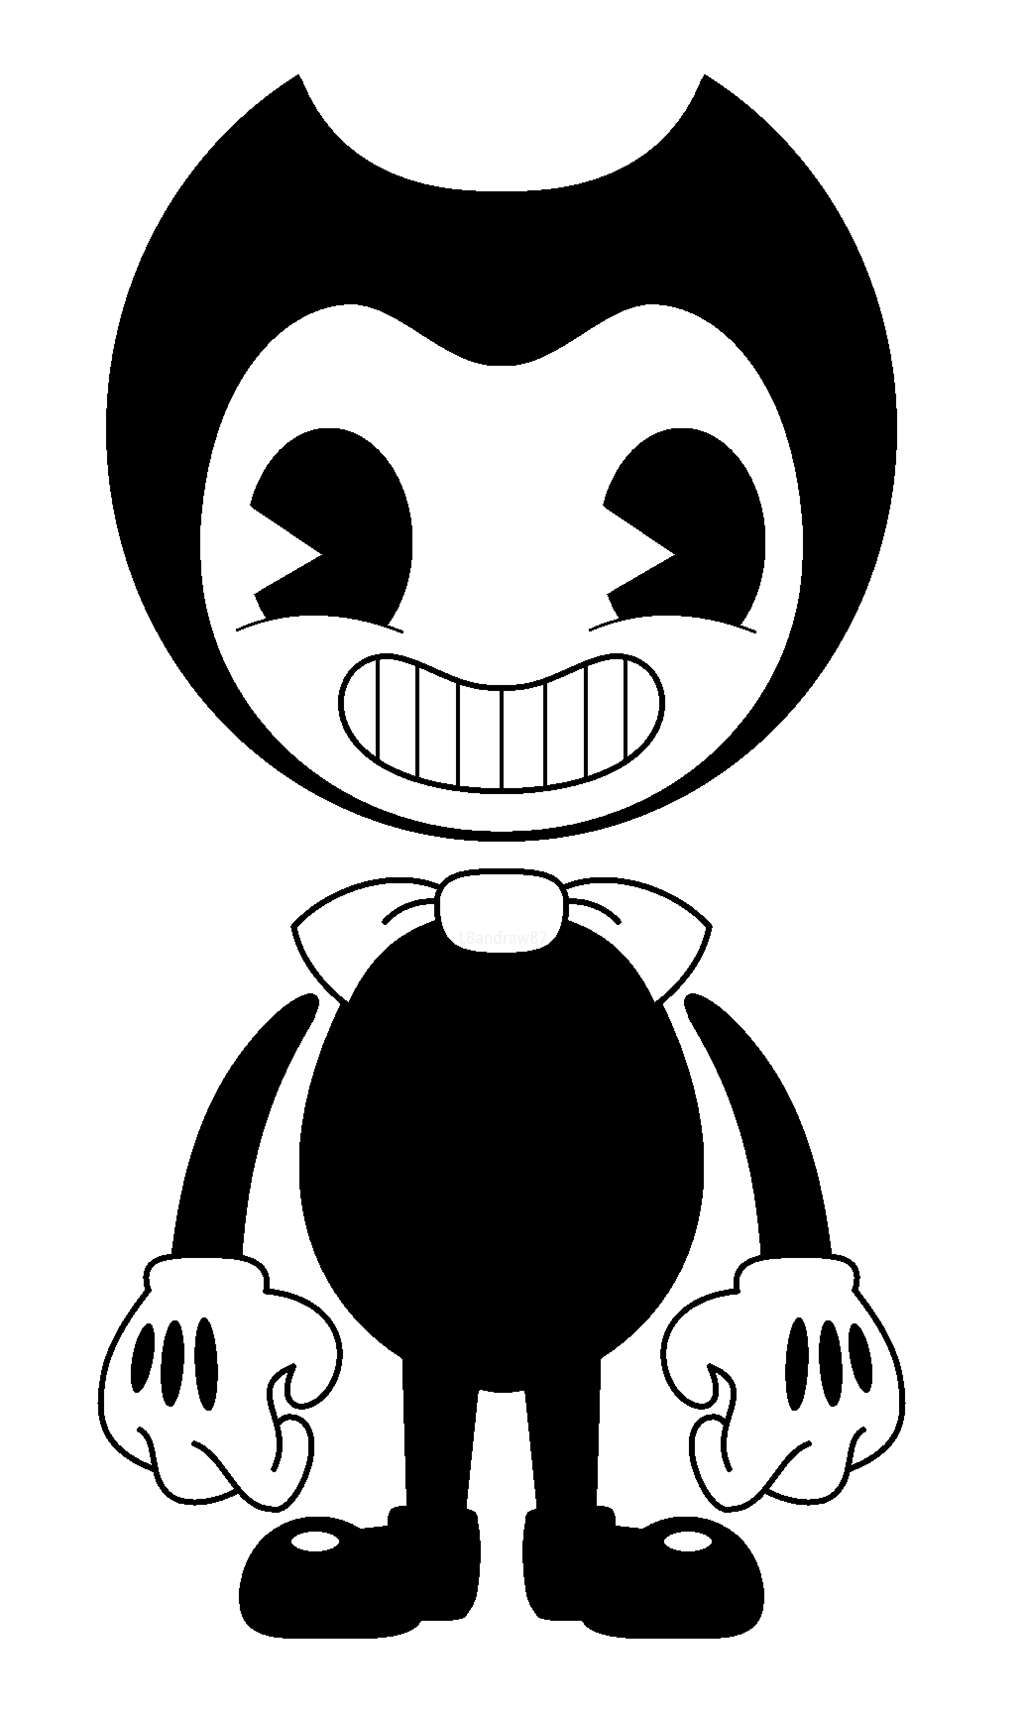 bendy - transparent_bendy_image_by_l8andraw87-db2r3ts